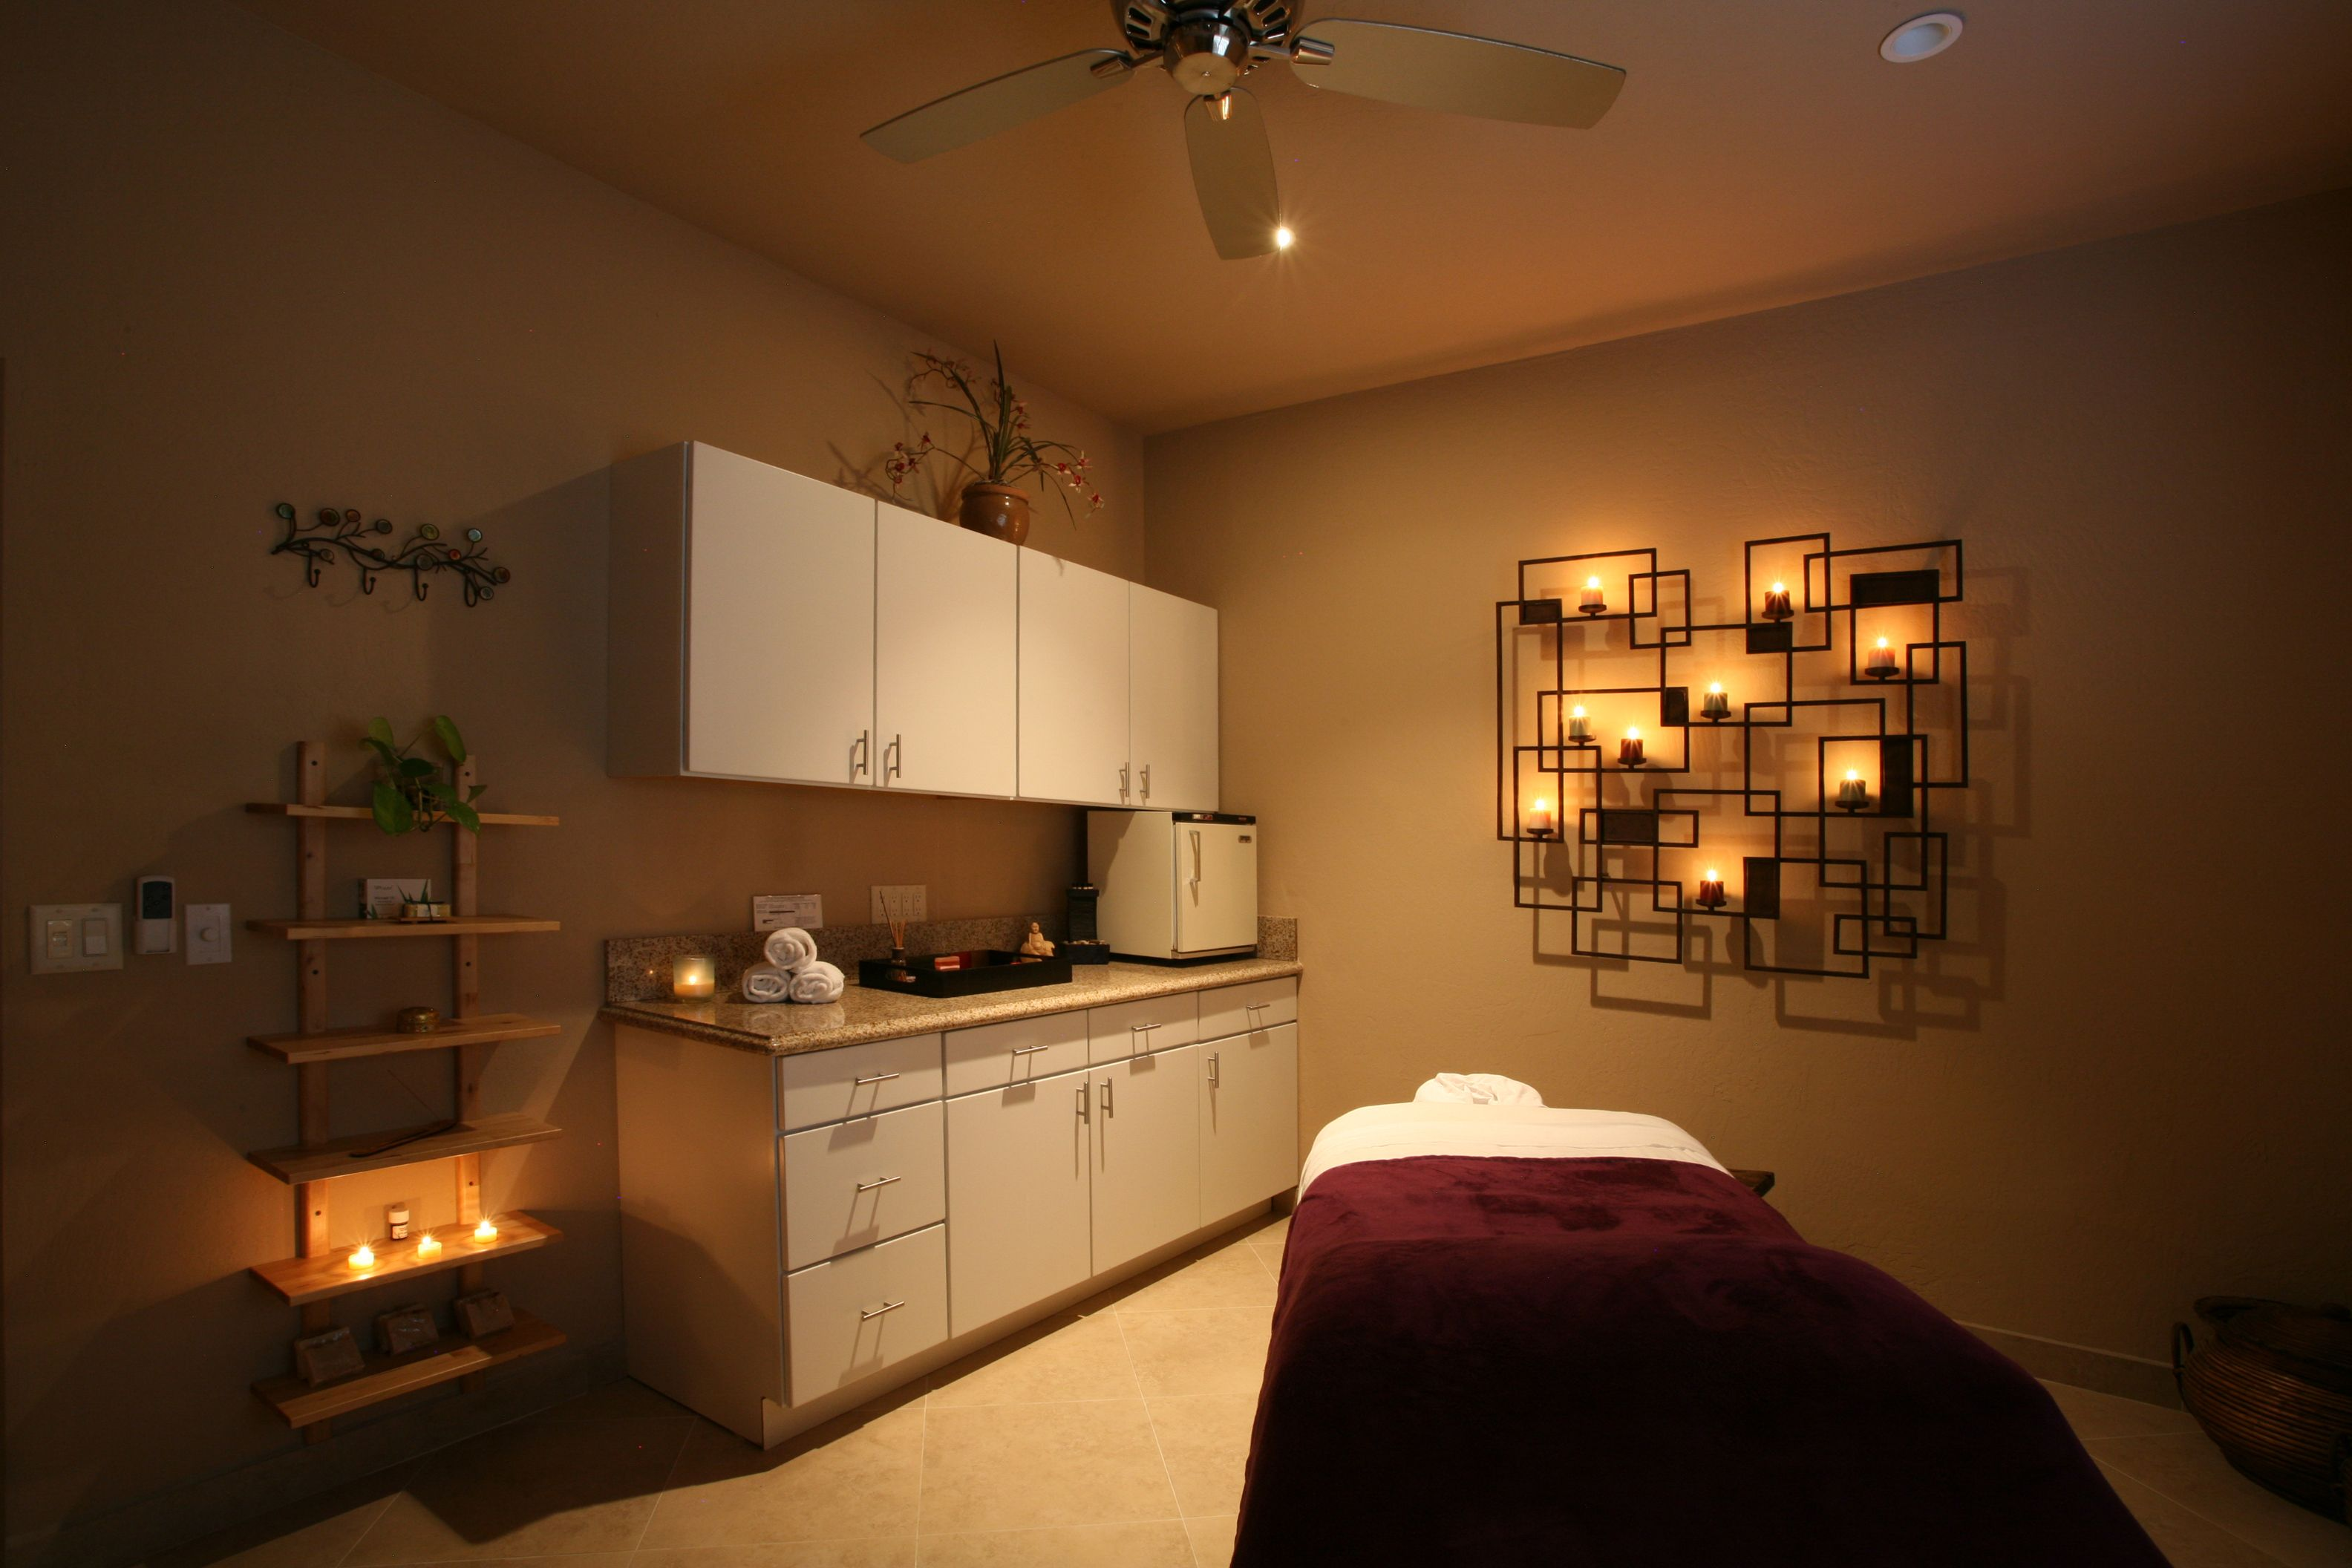 One Of Salon 119 U0026 Spa Treatment Rooms. Massage, And Or Body Scrubs